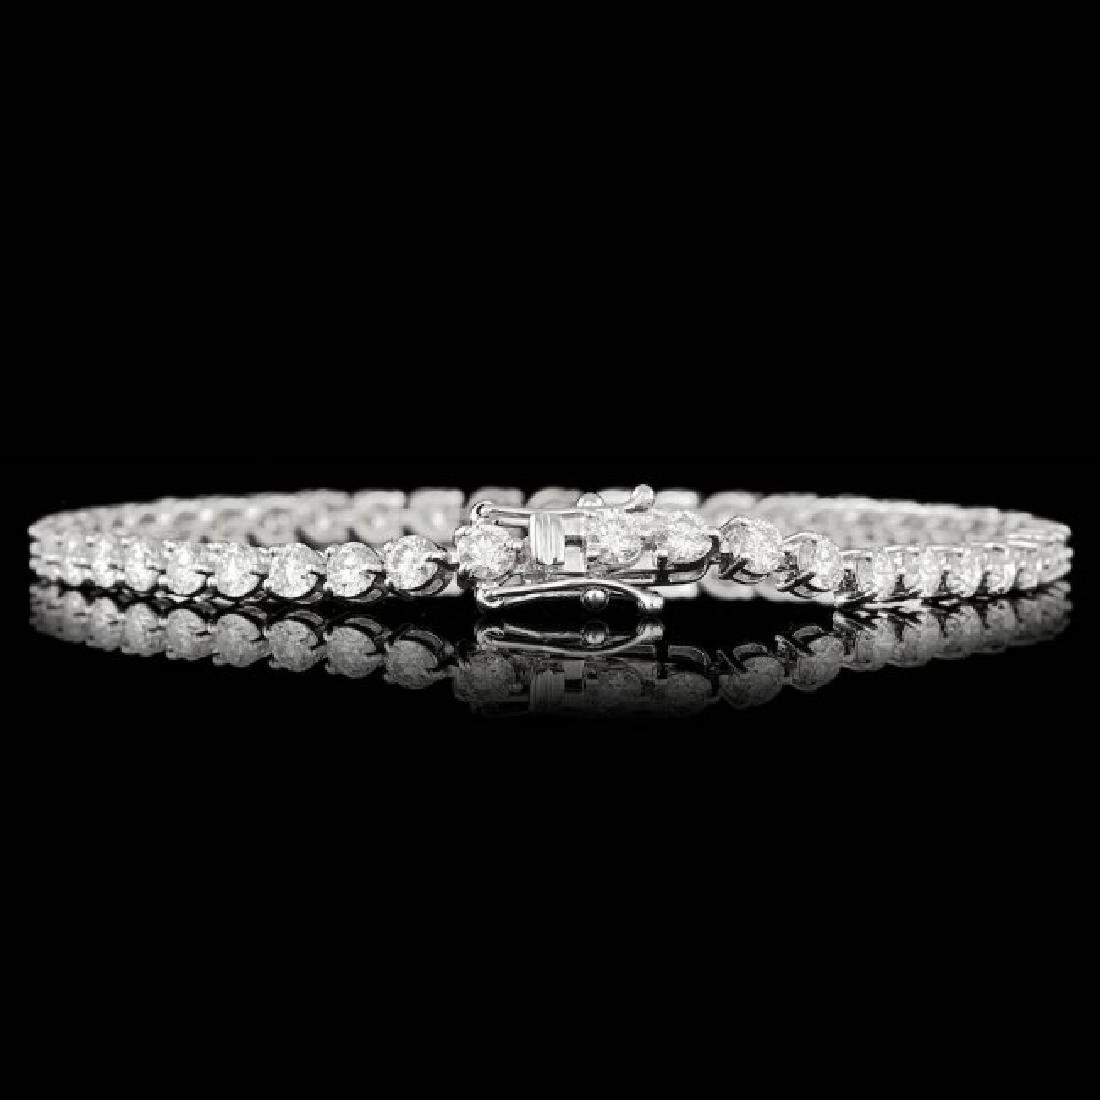 18k White Gold 6.25ct Diamond Bracelet - 3